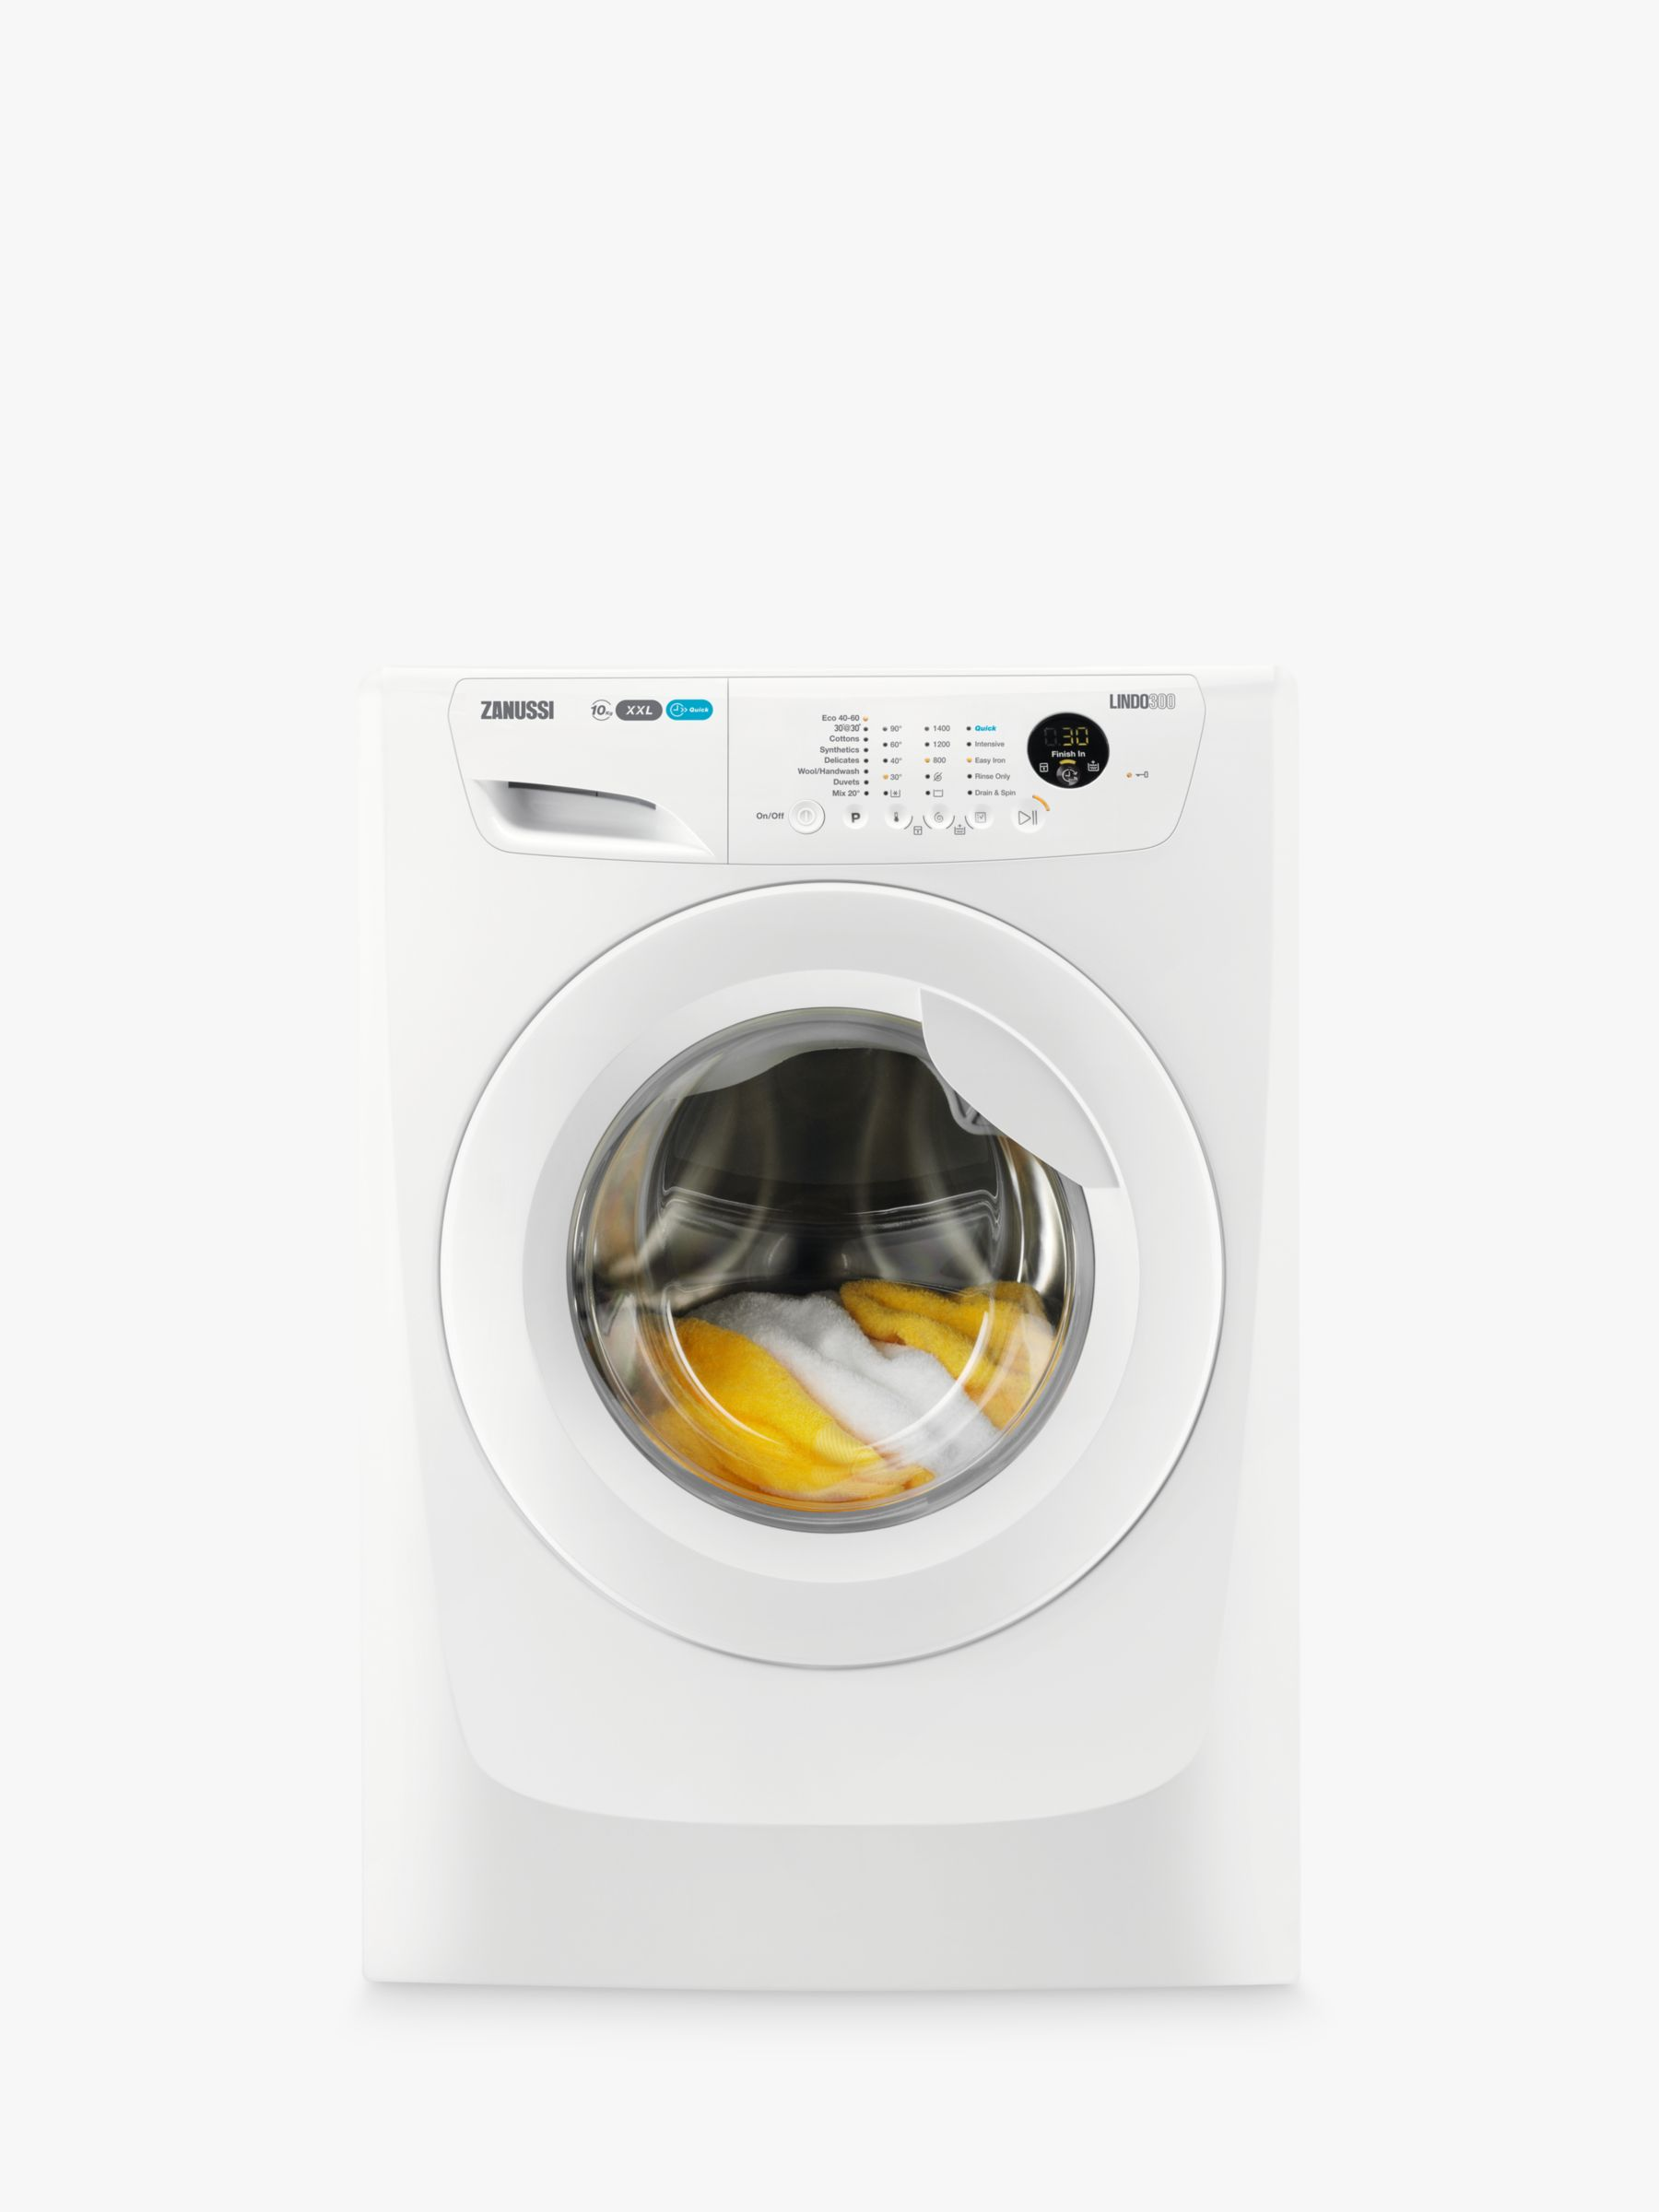 Zanussi Zanussi ZWF01483W Washing Machine, 10kg Load, A+++ Energy Rating, 1400rpm Spin, White